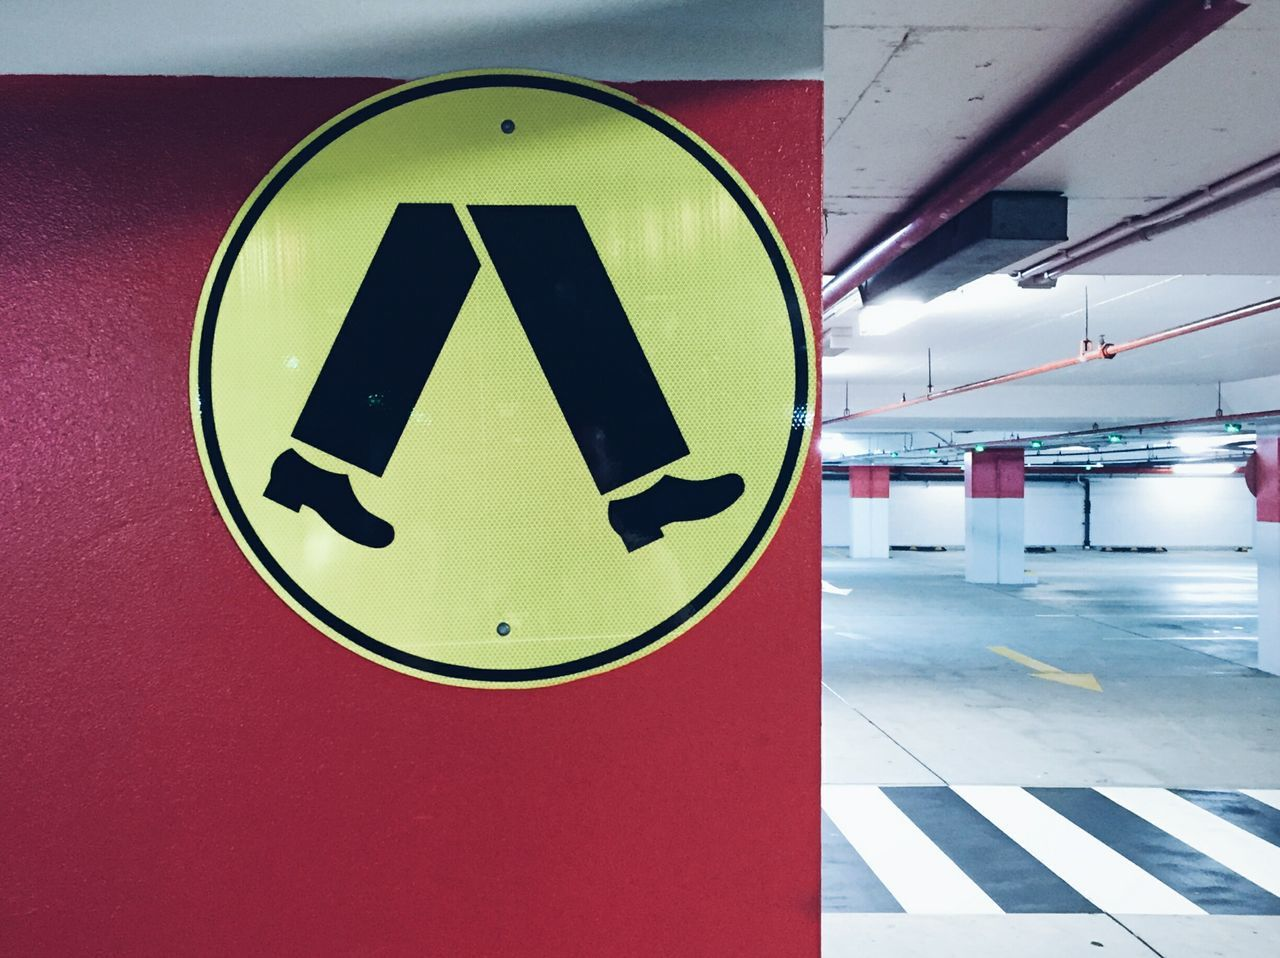 Parking Underground Underground Signs Parking Lot Parking Garage Urban Urban Photography Sign Signs Walk Pedestrian Crossing